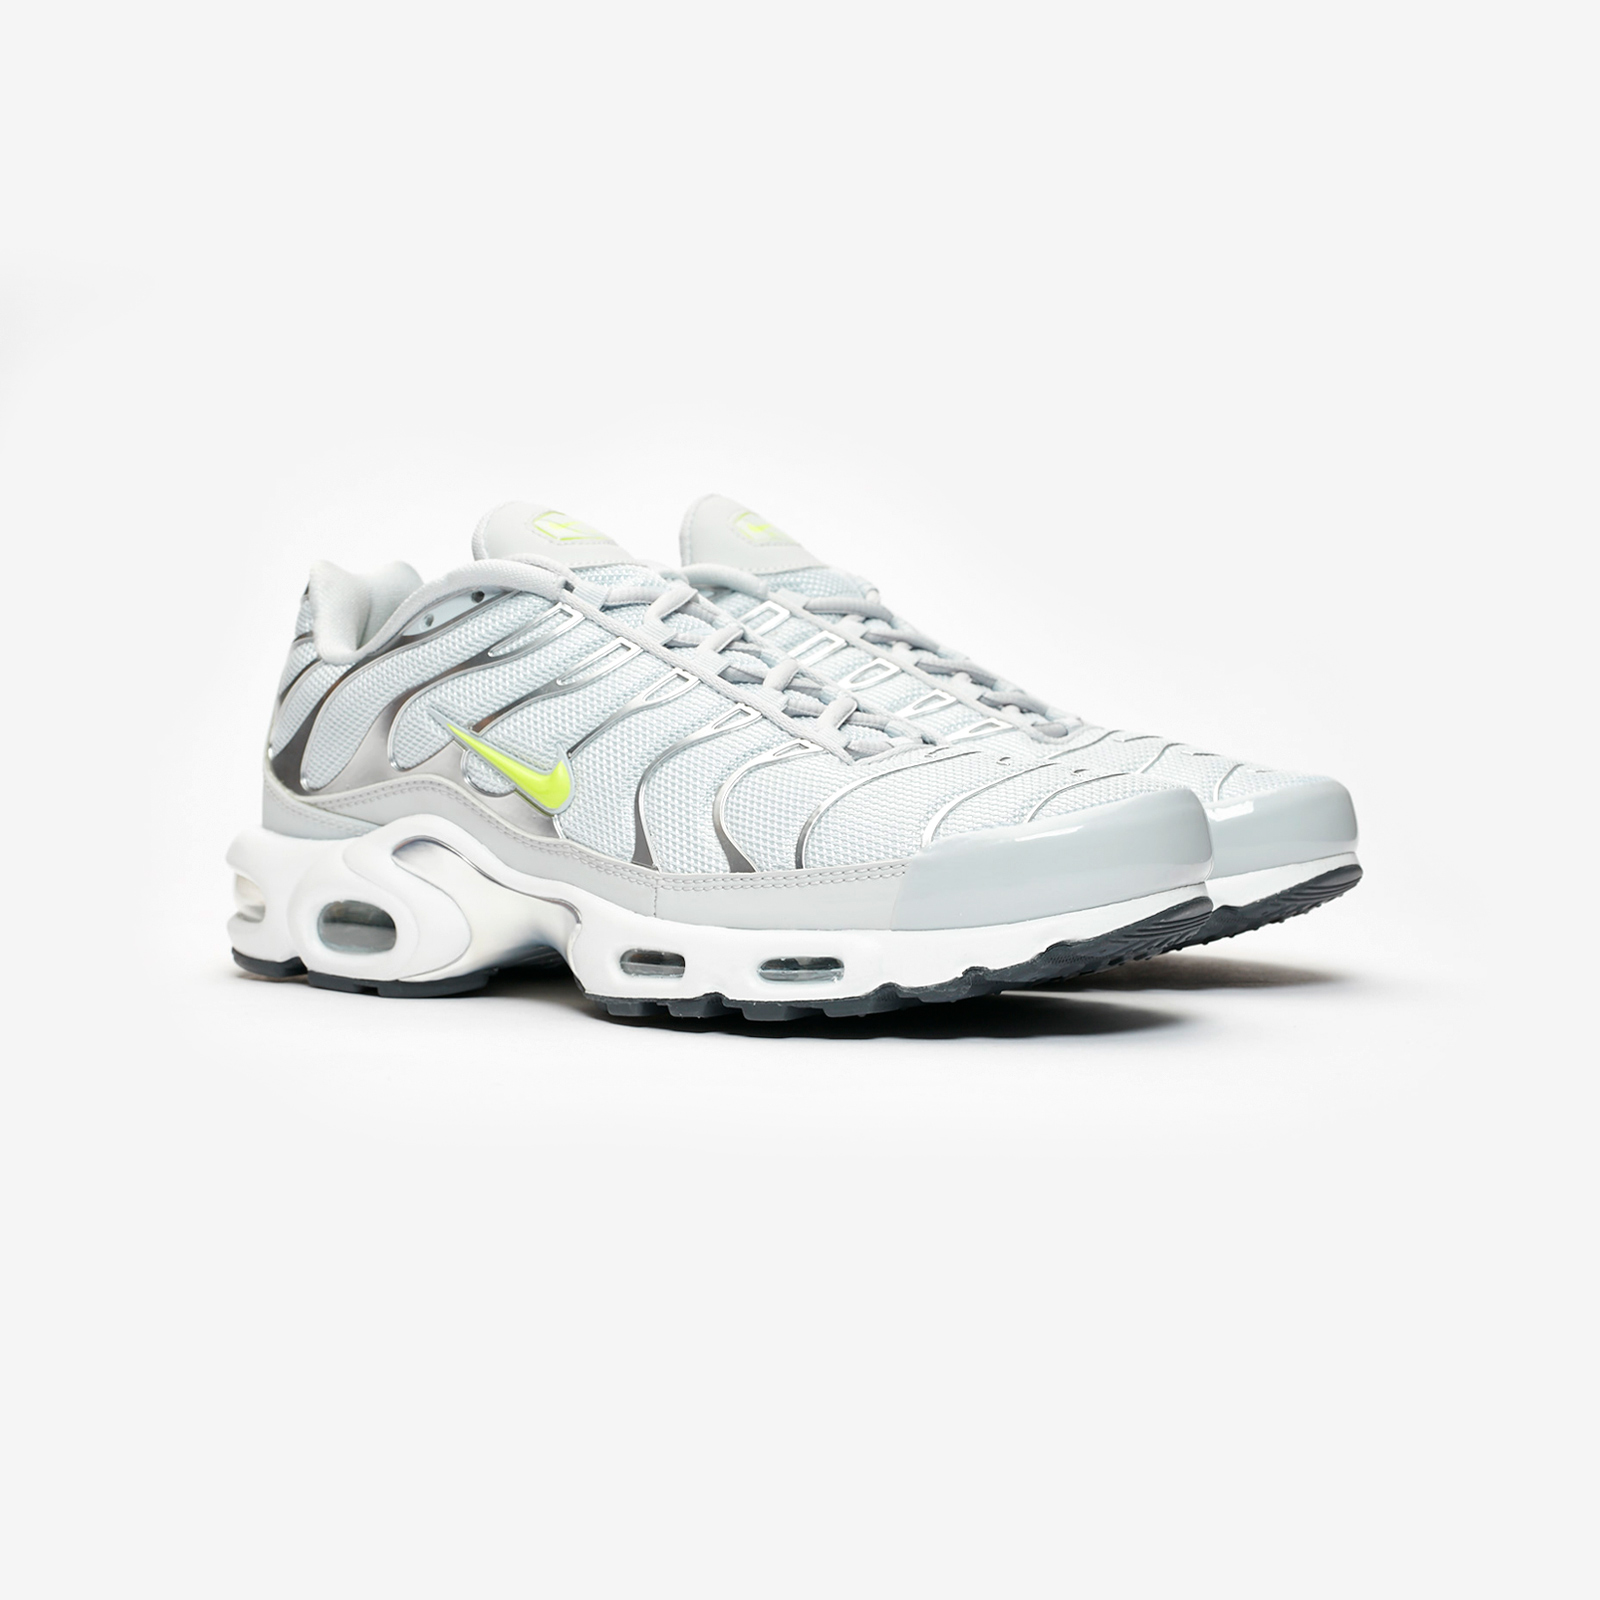 Nike Air Max Plus TN SE Cd1533 002 Sneakersnstuff I